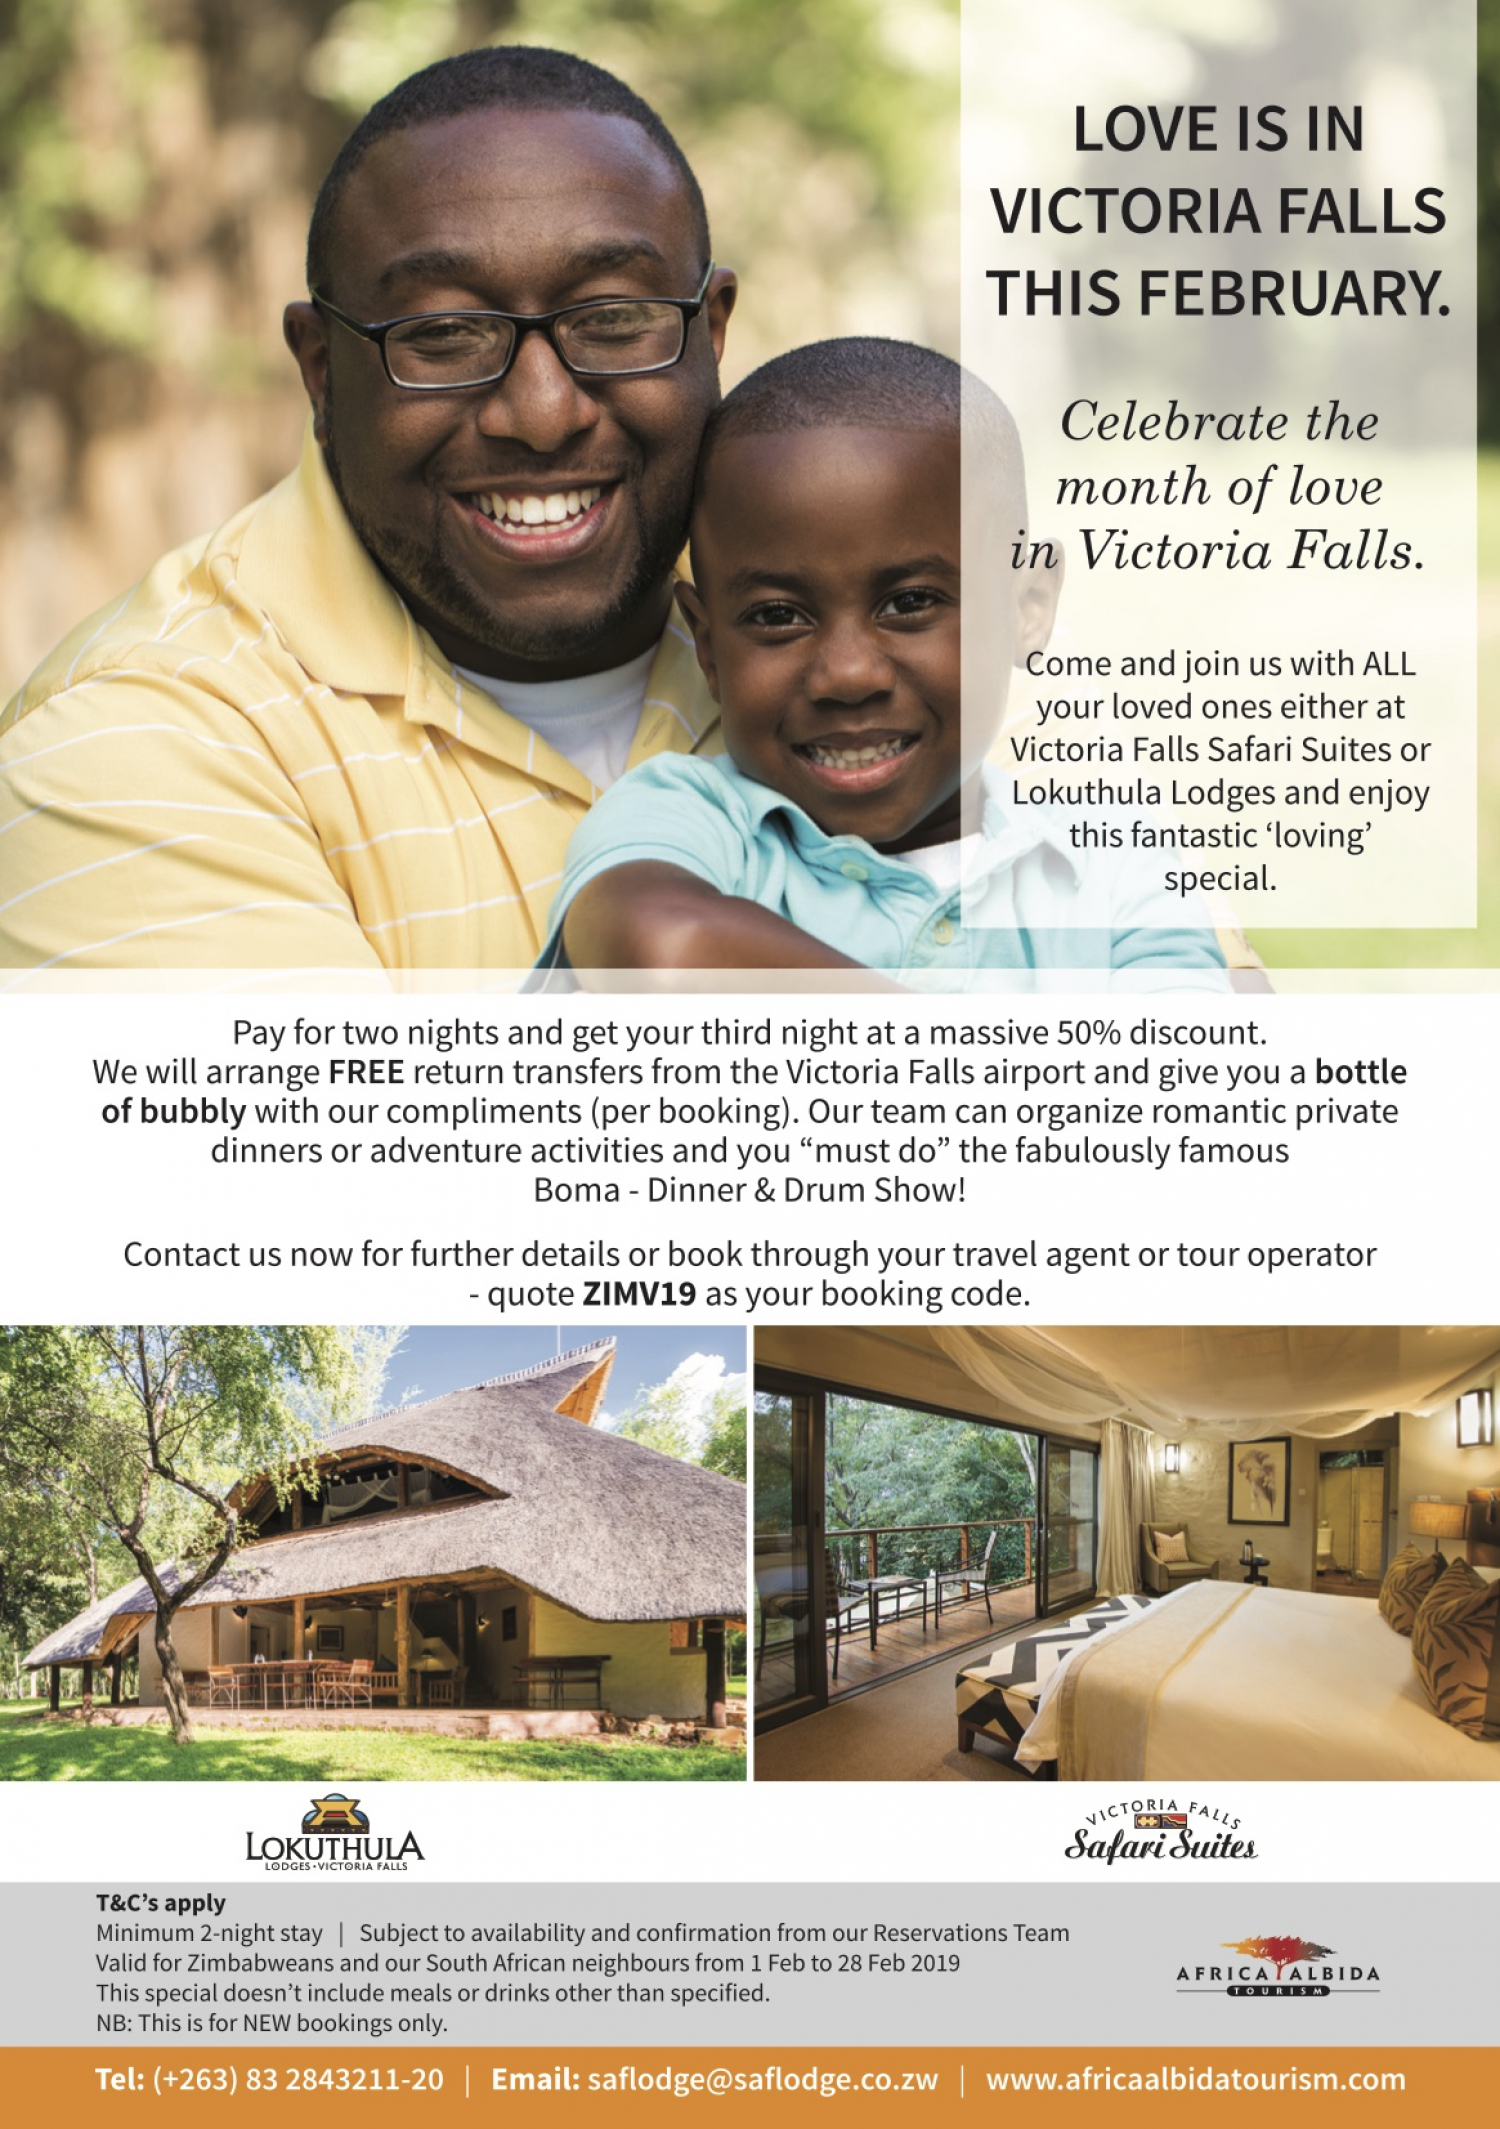 Valentine's Specials at Victoria Safari Suite And Lokuthula lodge